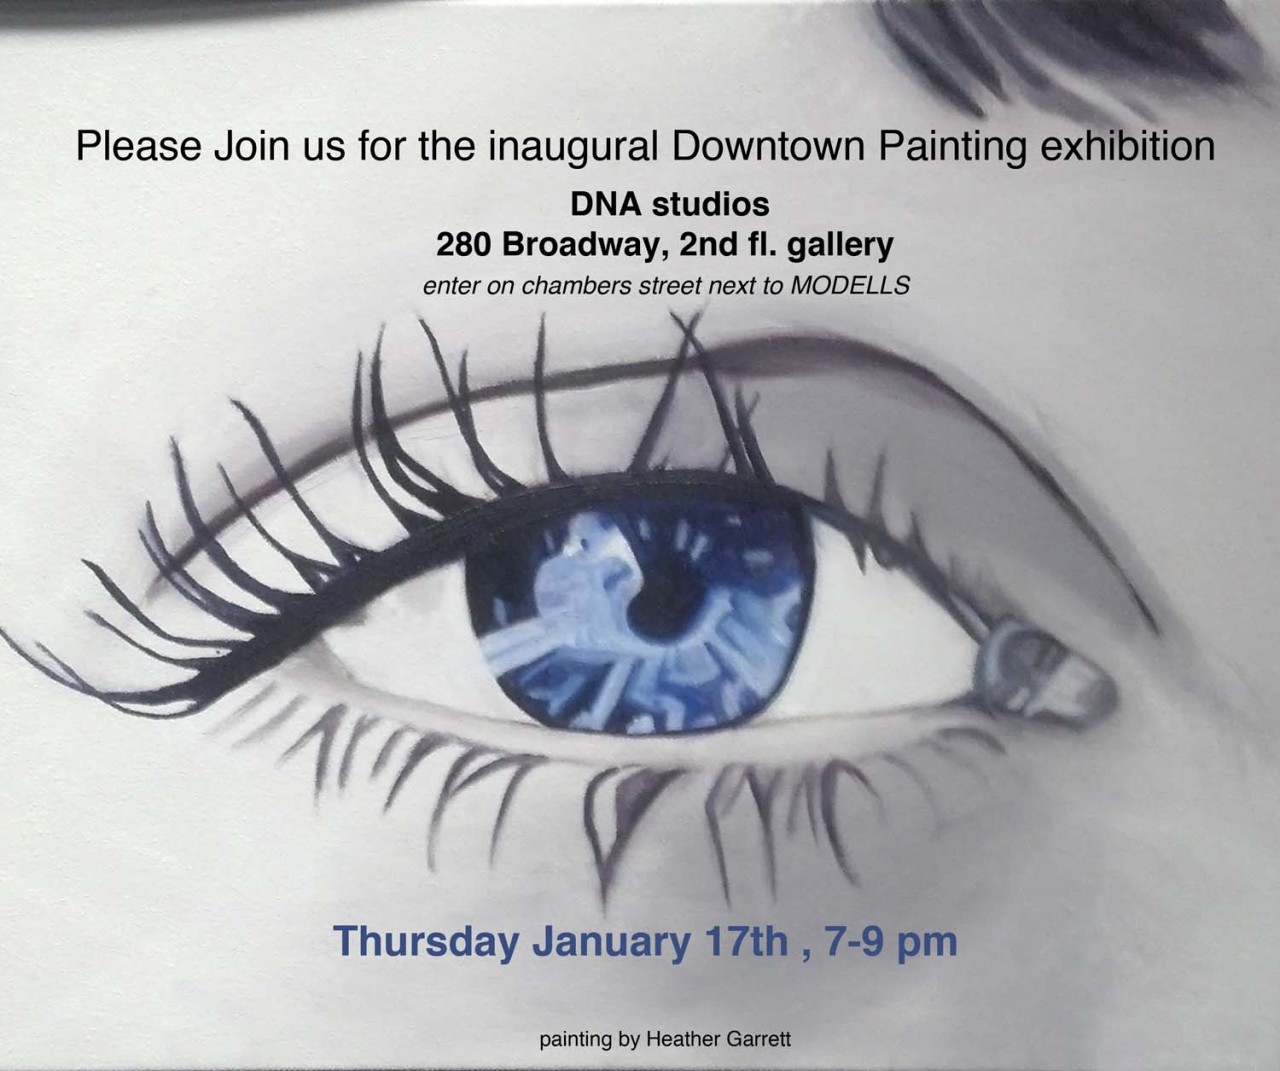 Please join us for the inaugural Downtown Painting exhibition, Thursday, January 17, 7-9 pm. A show of student work from the fall semester. At 280 Broadway, 2nd floor gallery (enter on Chambers street next to Modell's). Wine and snacks, beautiful paintings and excellent company. All friends, family and art lovers are welcome.